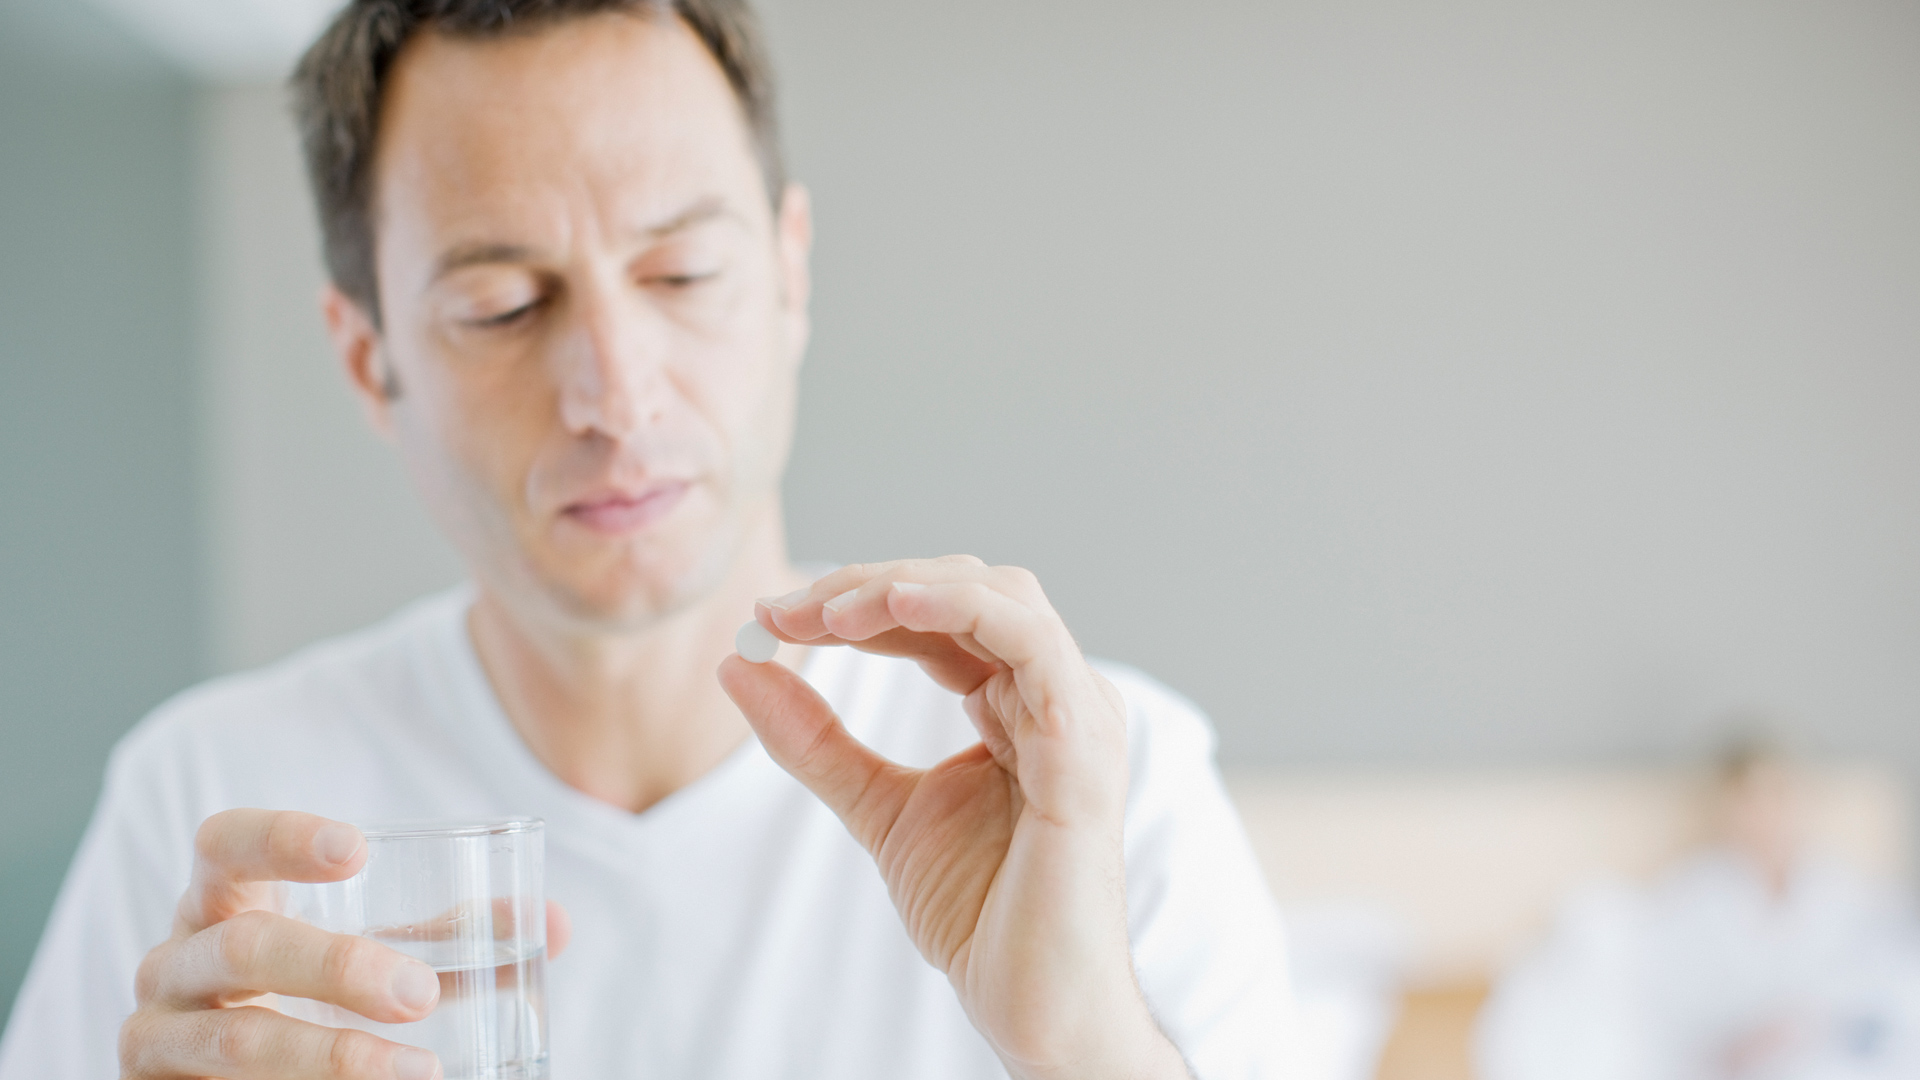 Man in white t shirt holding aspirin and glass of water